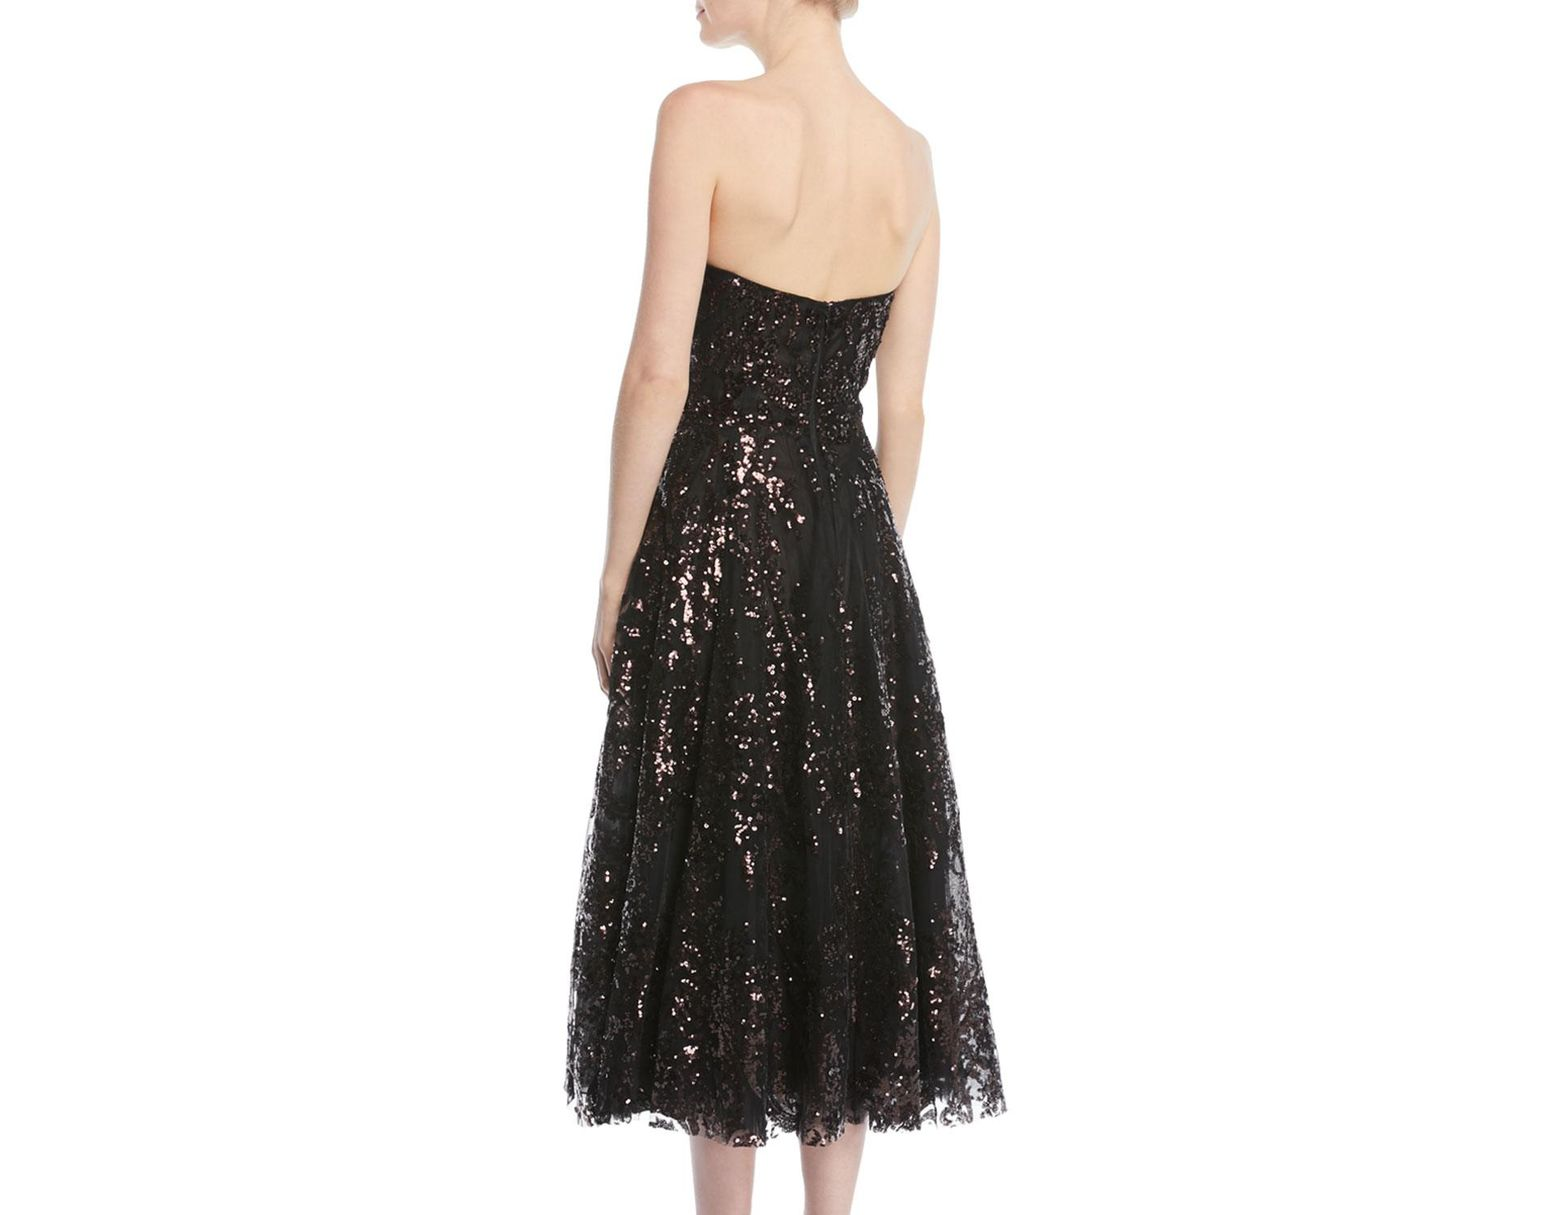 ff0cdfb699cb0 Naeem Khan Strapless Fit-and-flare Sequined Tea-length Evening Dress in  Black - Lyst